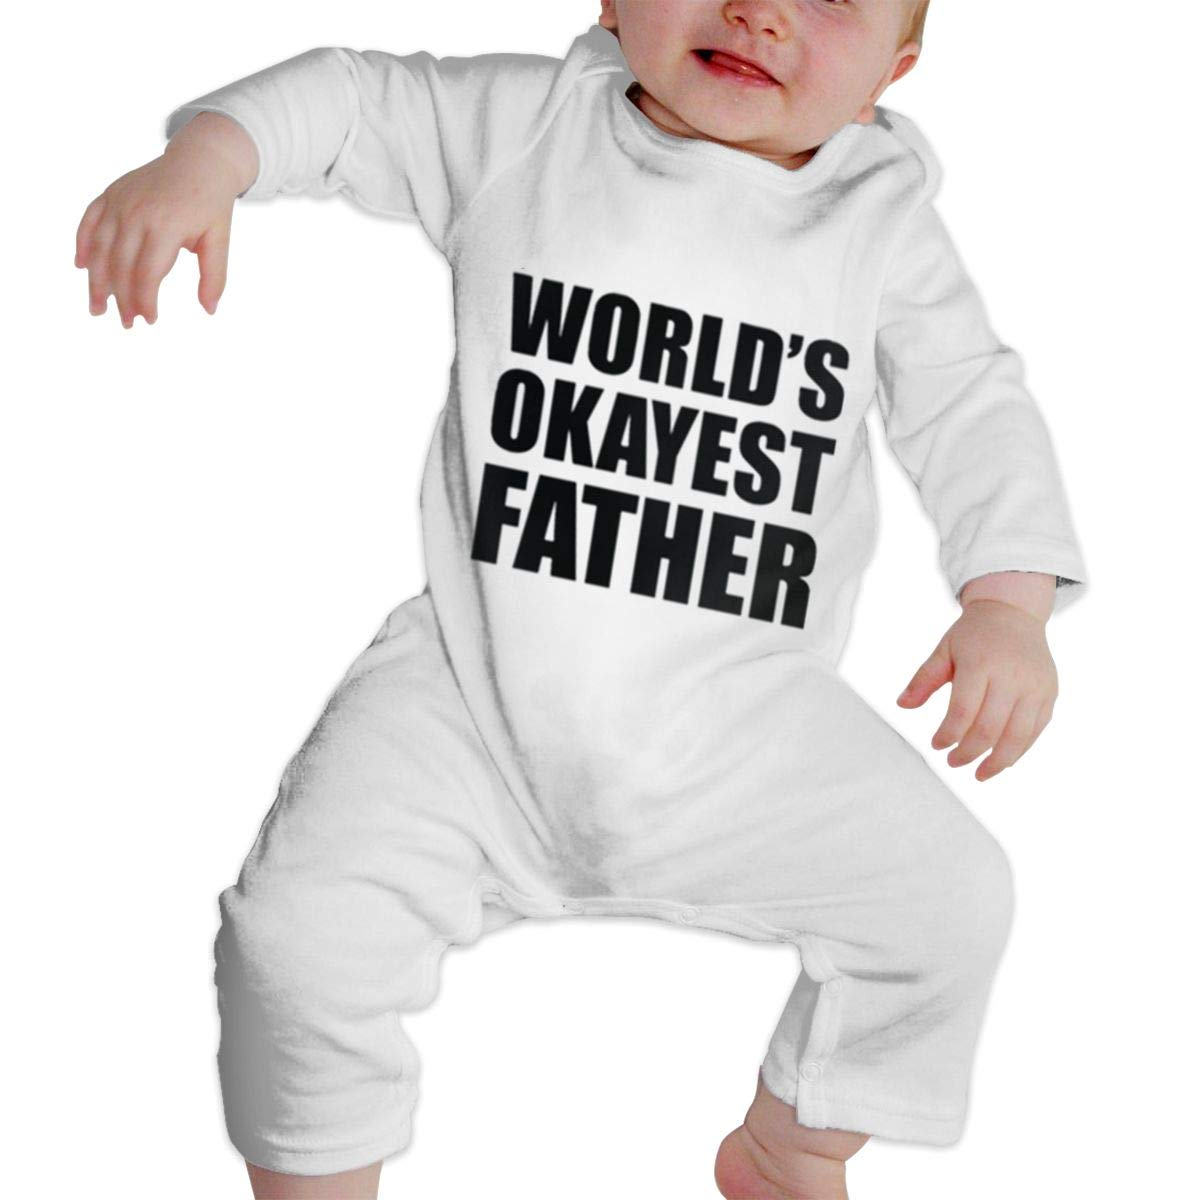 Okayest Father Unisex Long Sleeve Baby Gown Baby Bodysuit Unionsuit Footed Pajamas Romper Jumpsuit